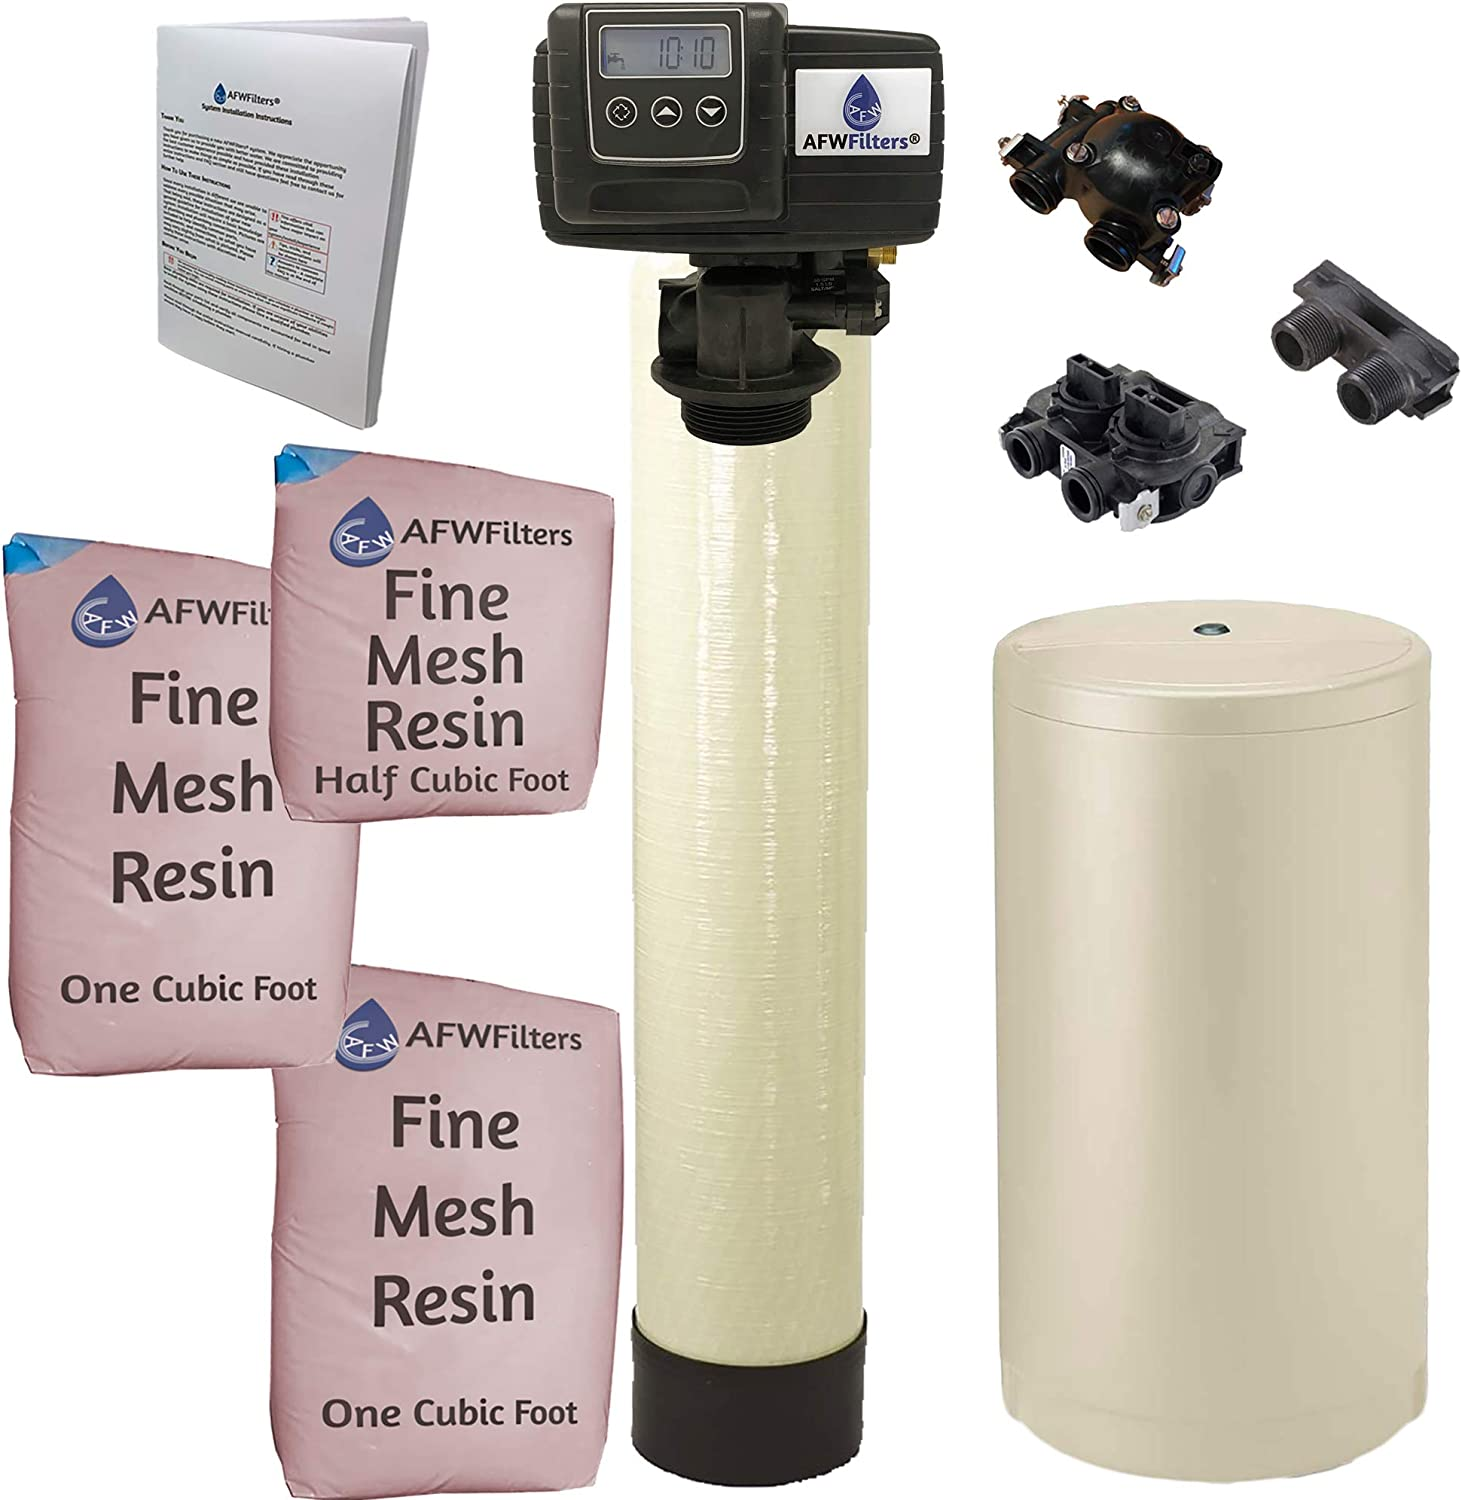 AFWFilters IRONPRO2 Pro 2 Combination Water Softener Iron Filter Fleck 5600SXT Digital metered Valve for Whole House 80,000 Grains, Almond